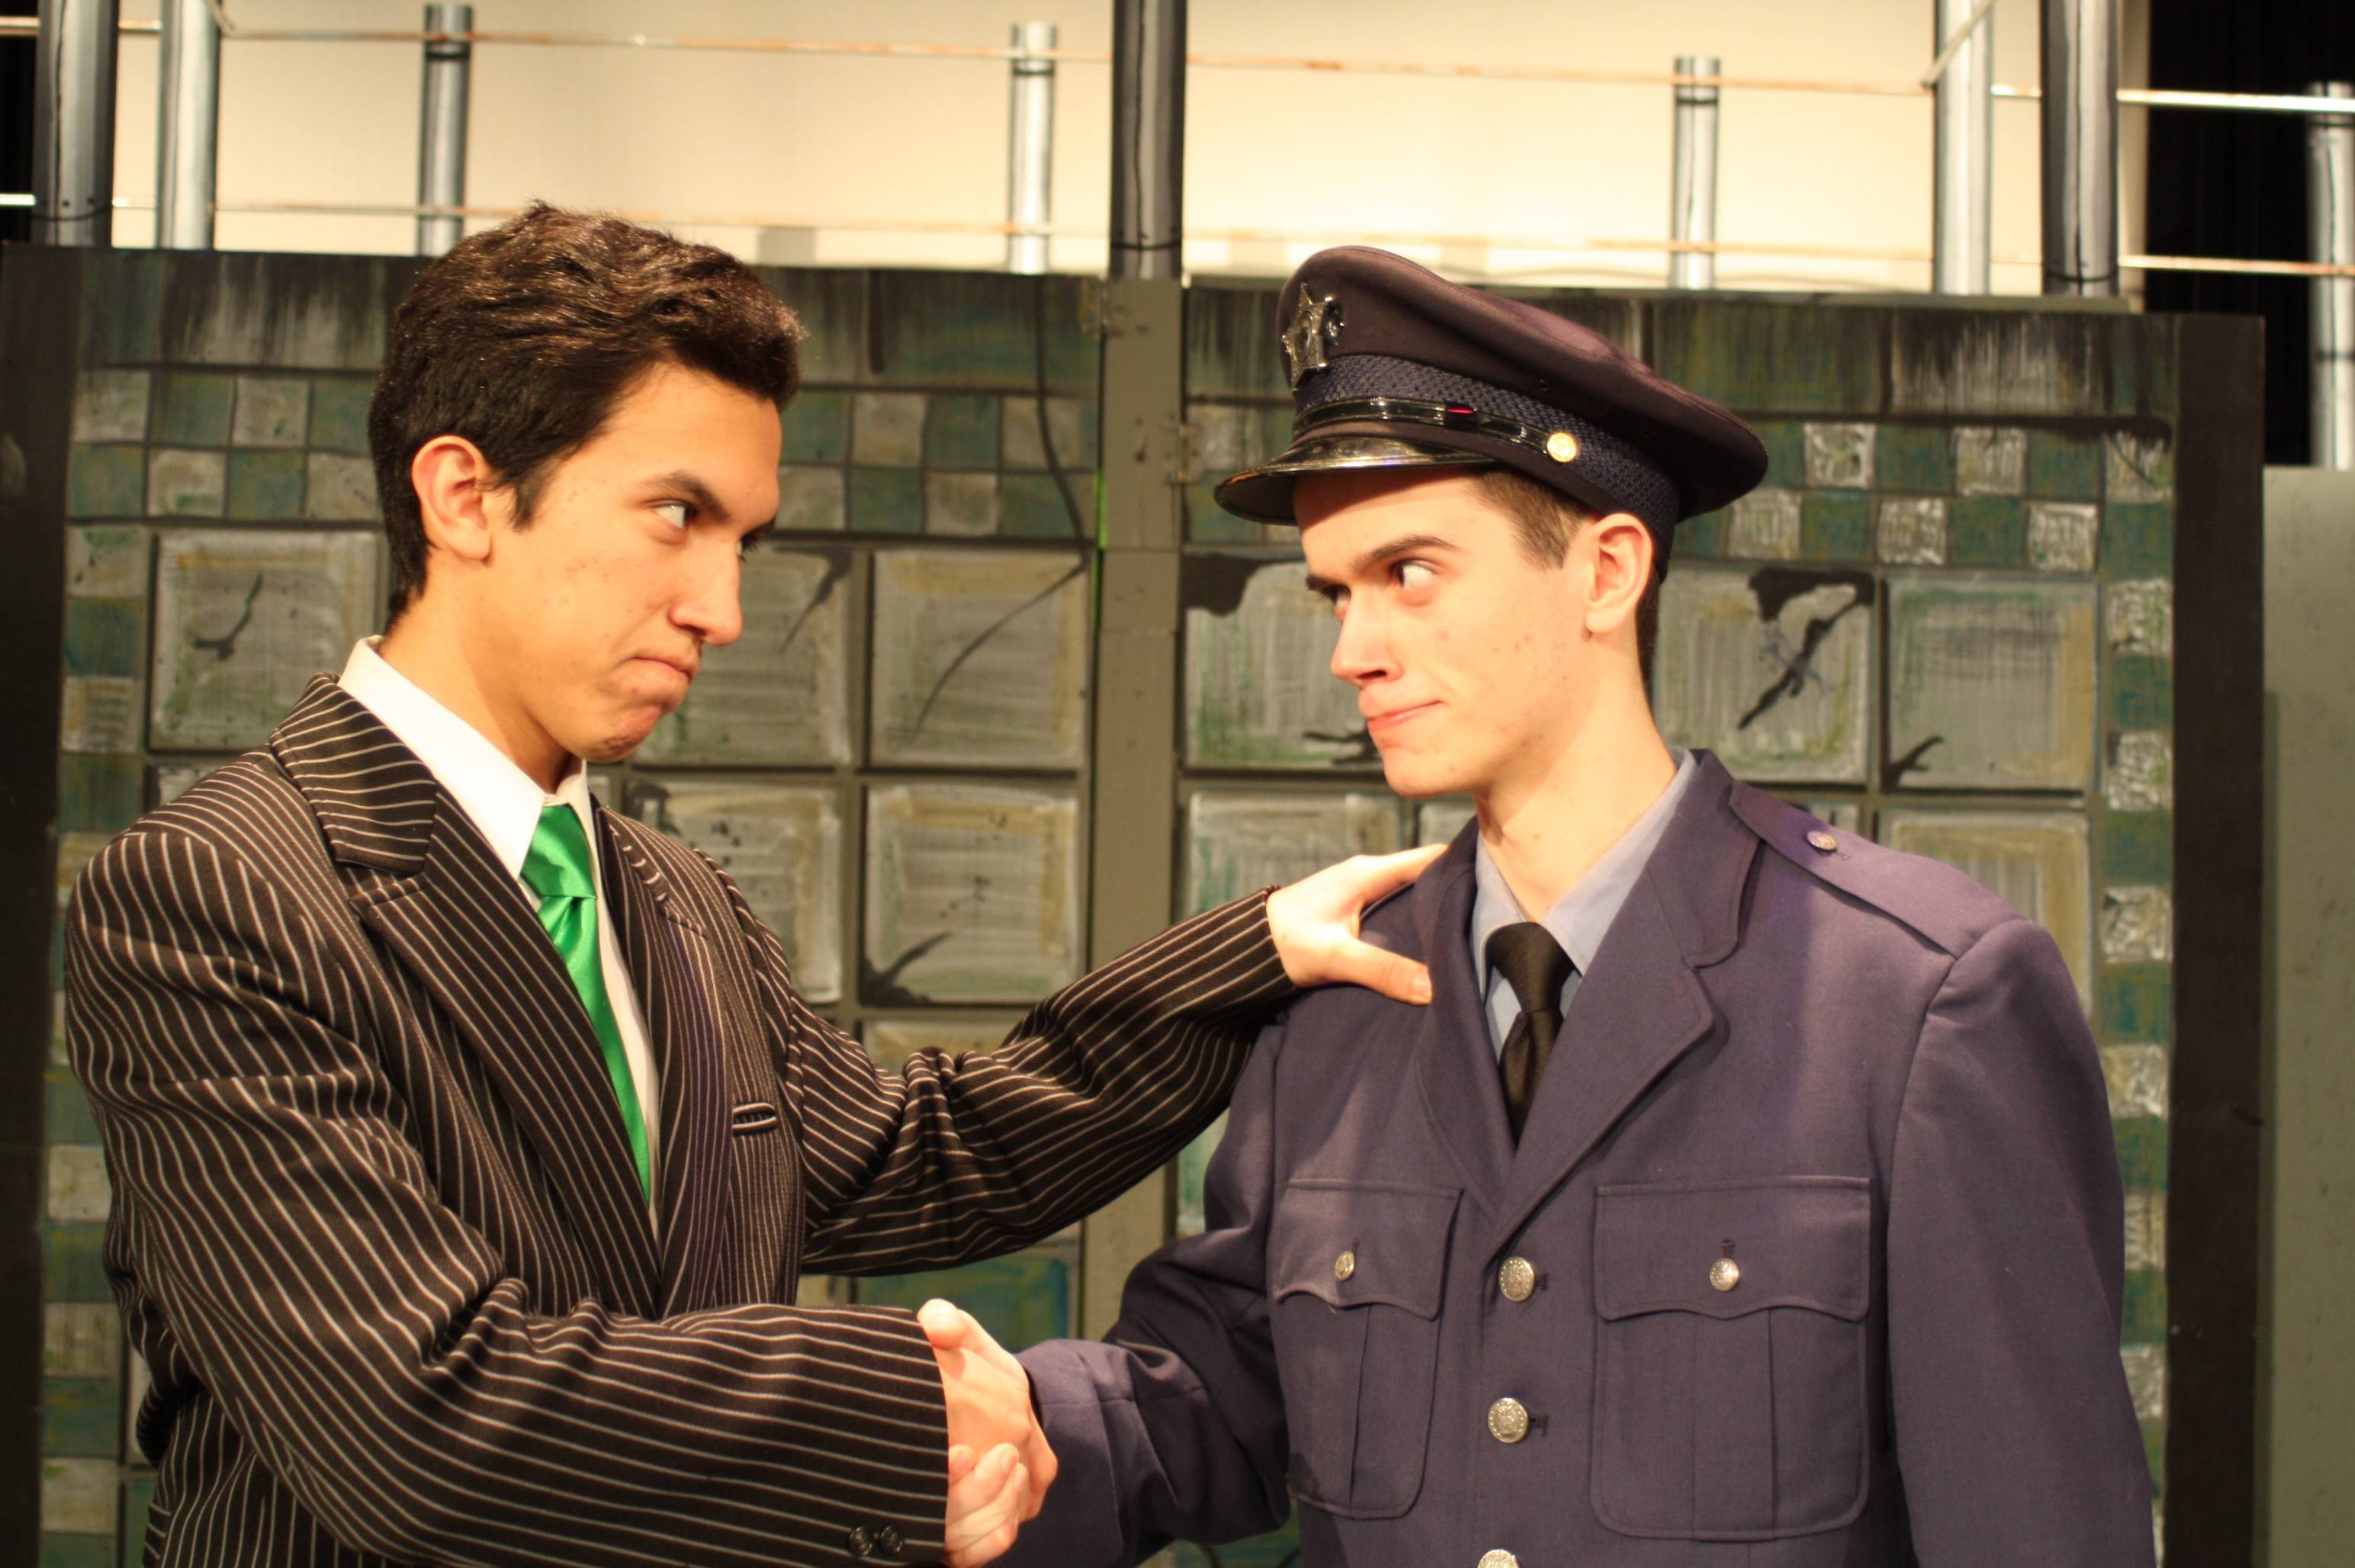 Andre Serbia as Caldwell B. Cladwell and Matt Emery as Officer Lockstock hatch a plan to stop the revolt.